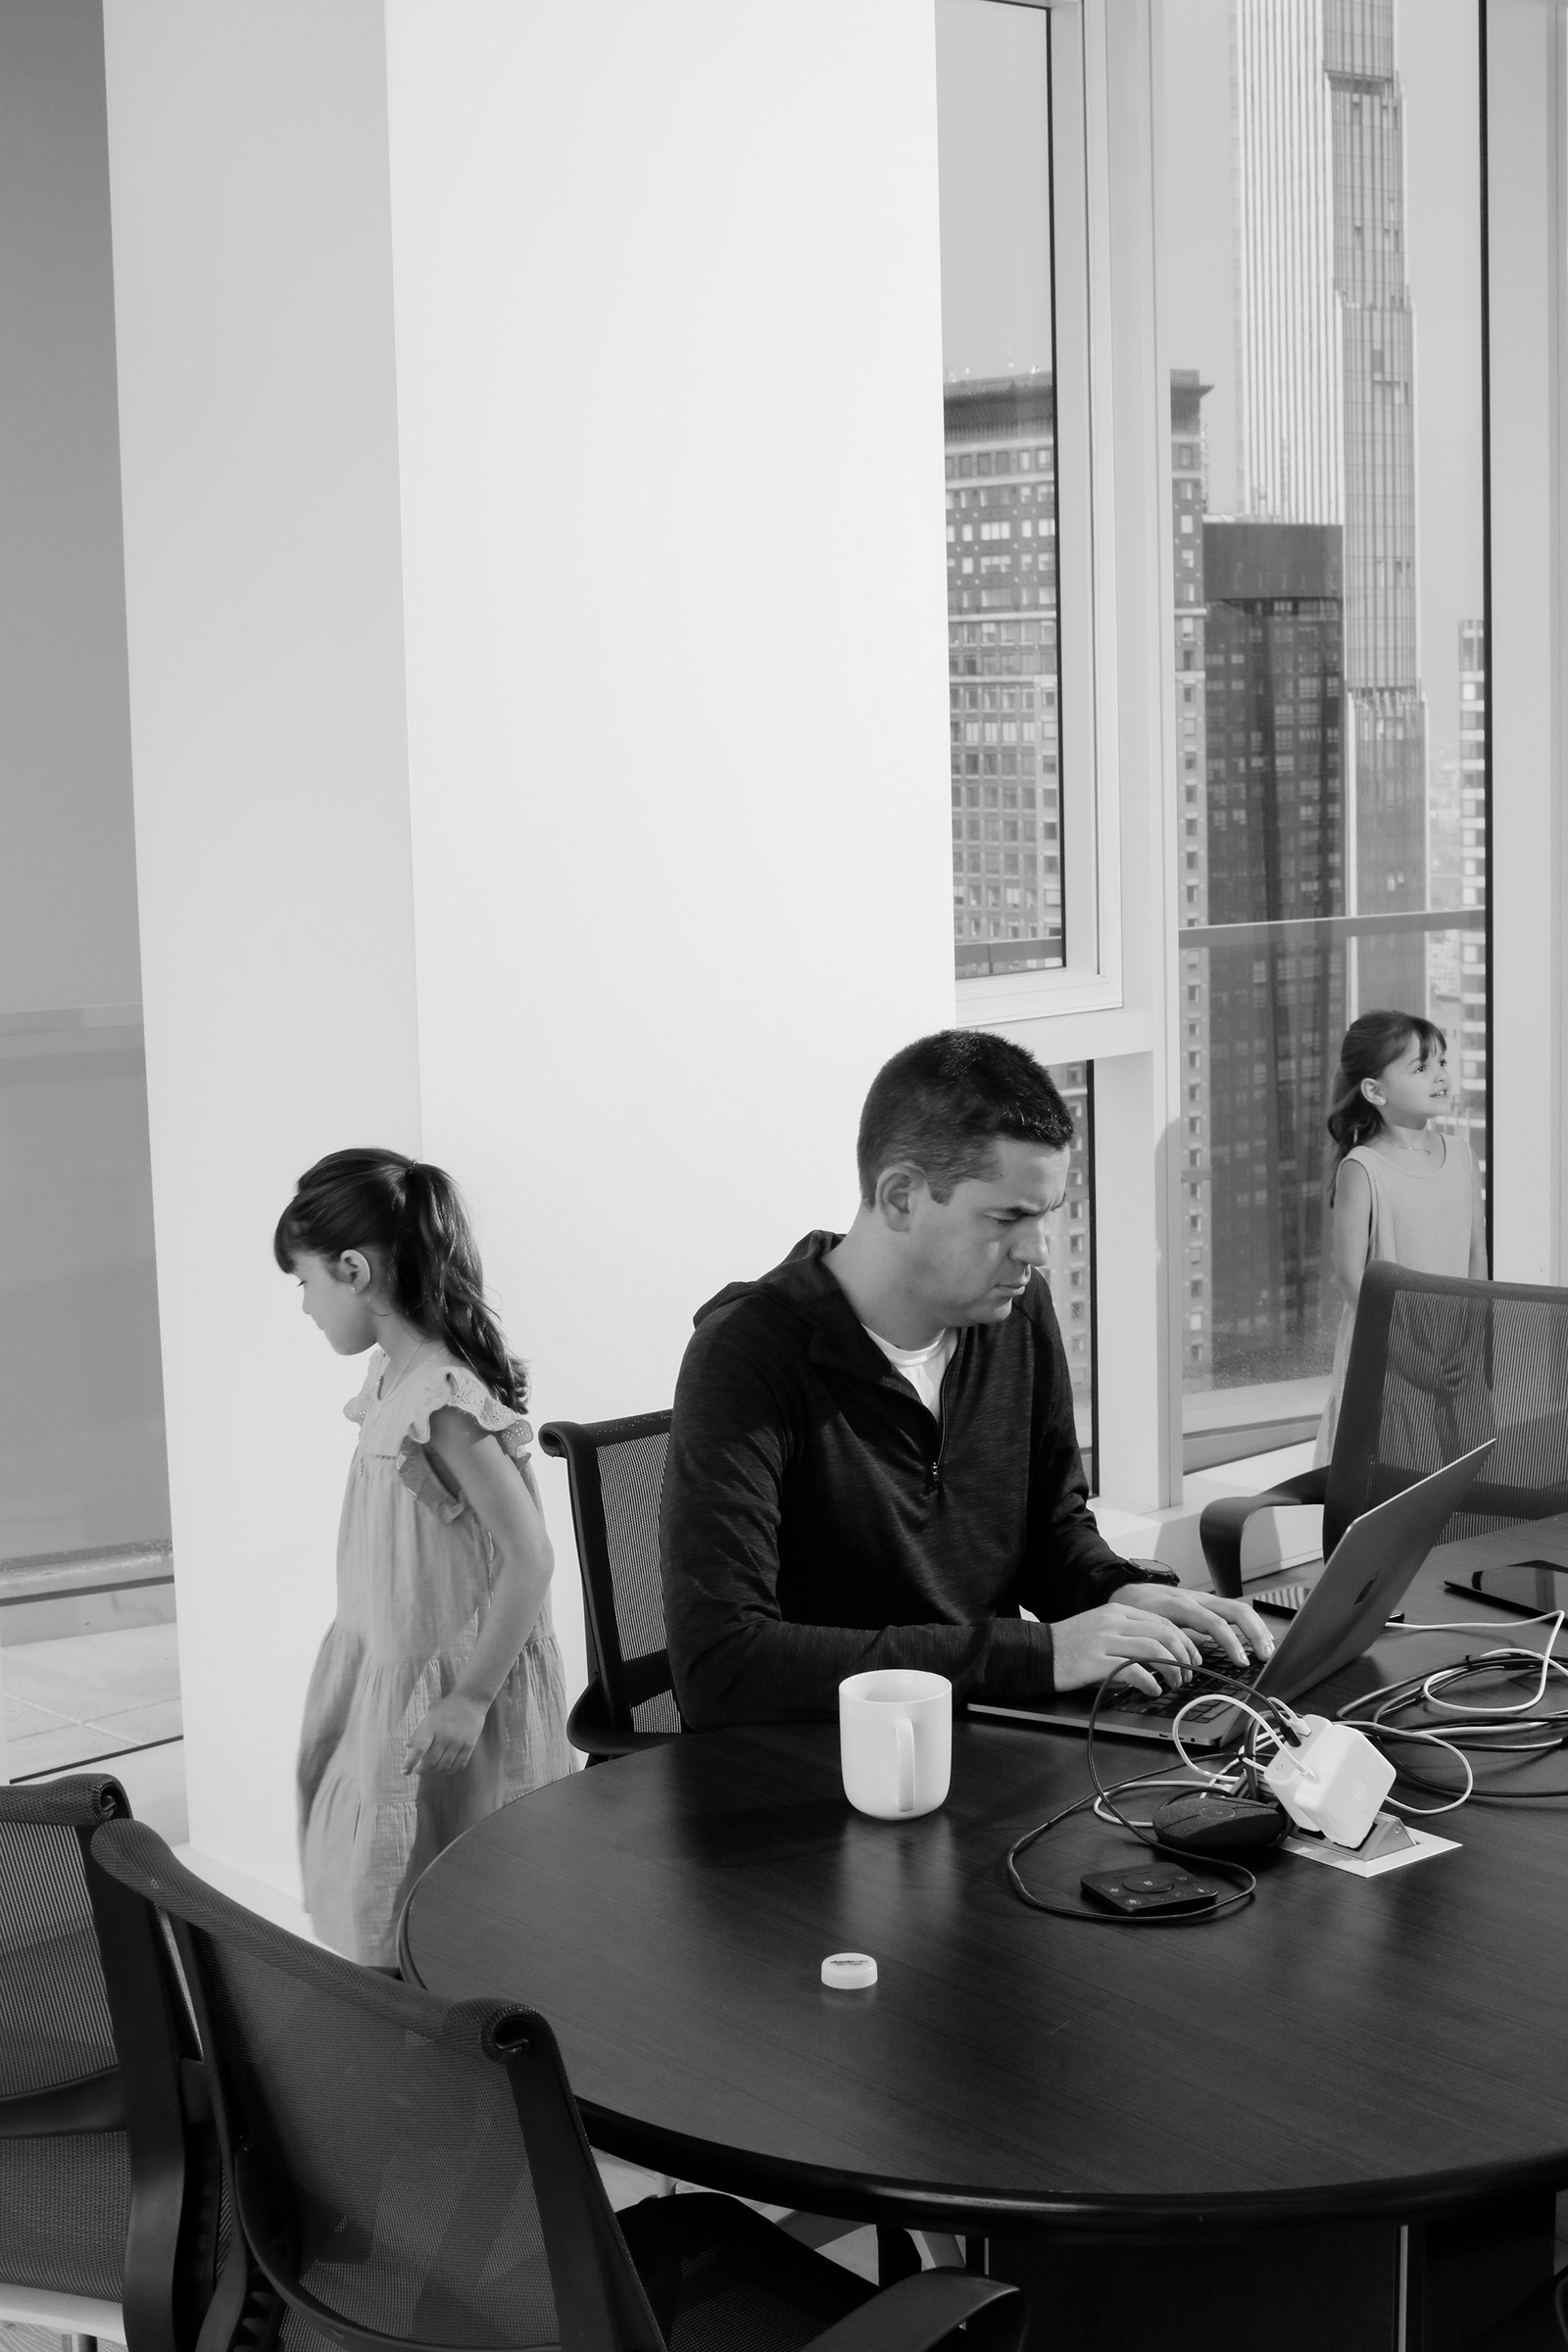 Jared Isaacman and his daughters at their apartment in New York City, July 2021.